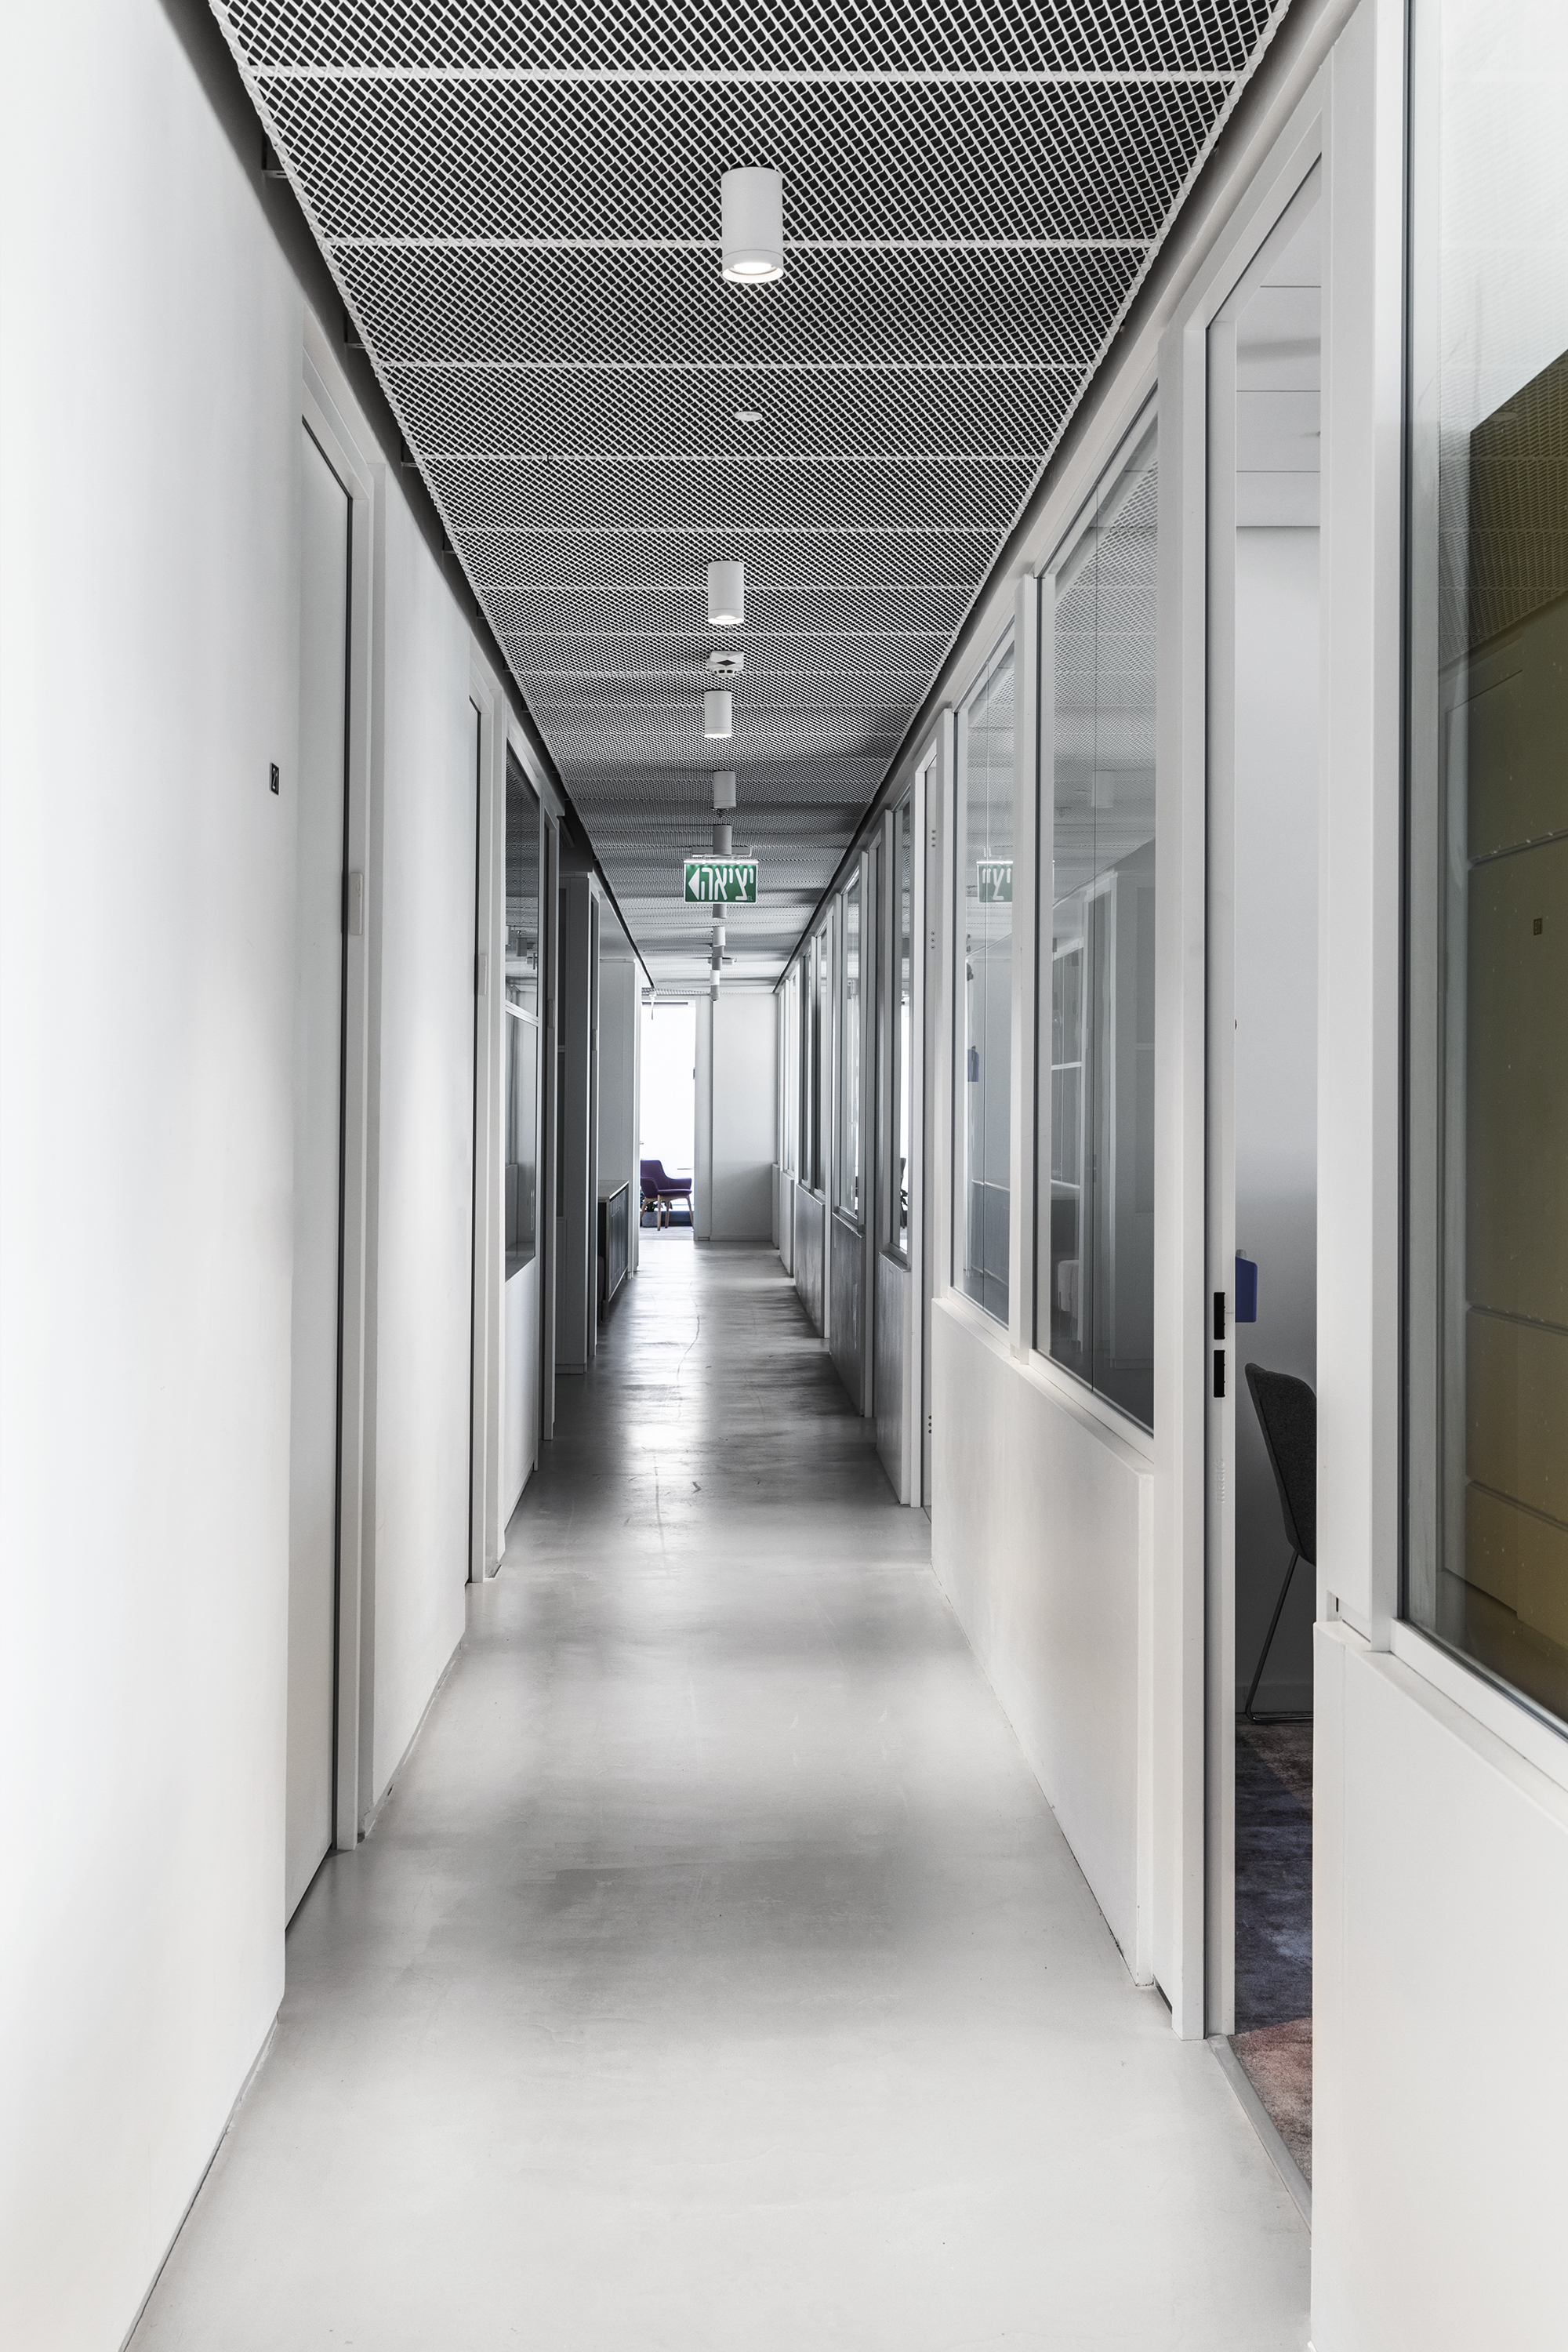 035_סטודיו רואי דוד - ROY DAVID ARCHITECTURE - NUVO OFFICES.jpg